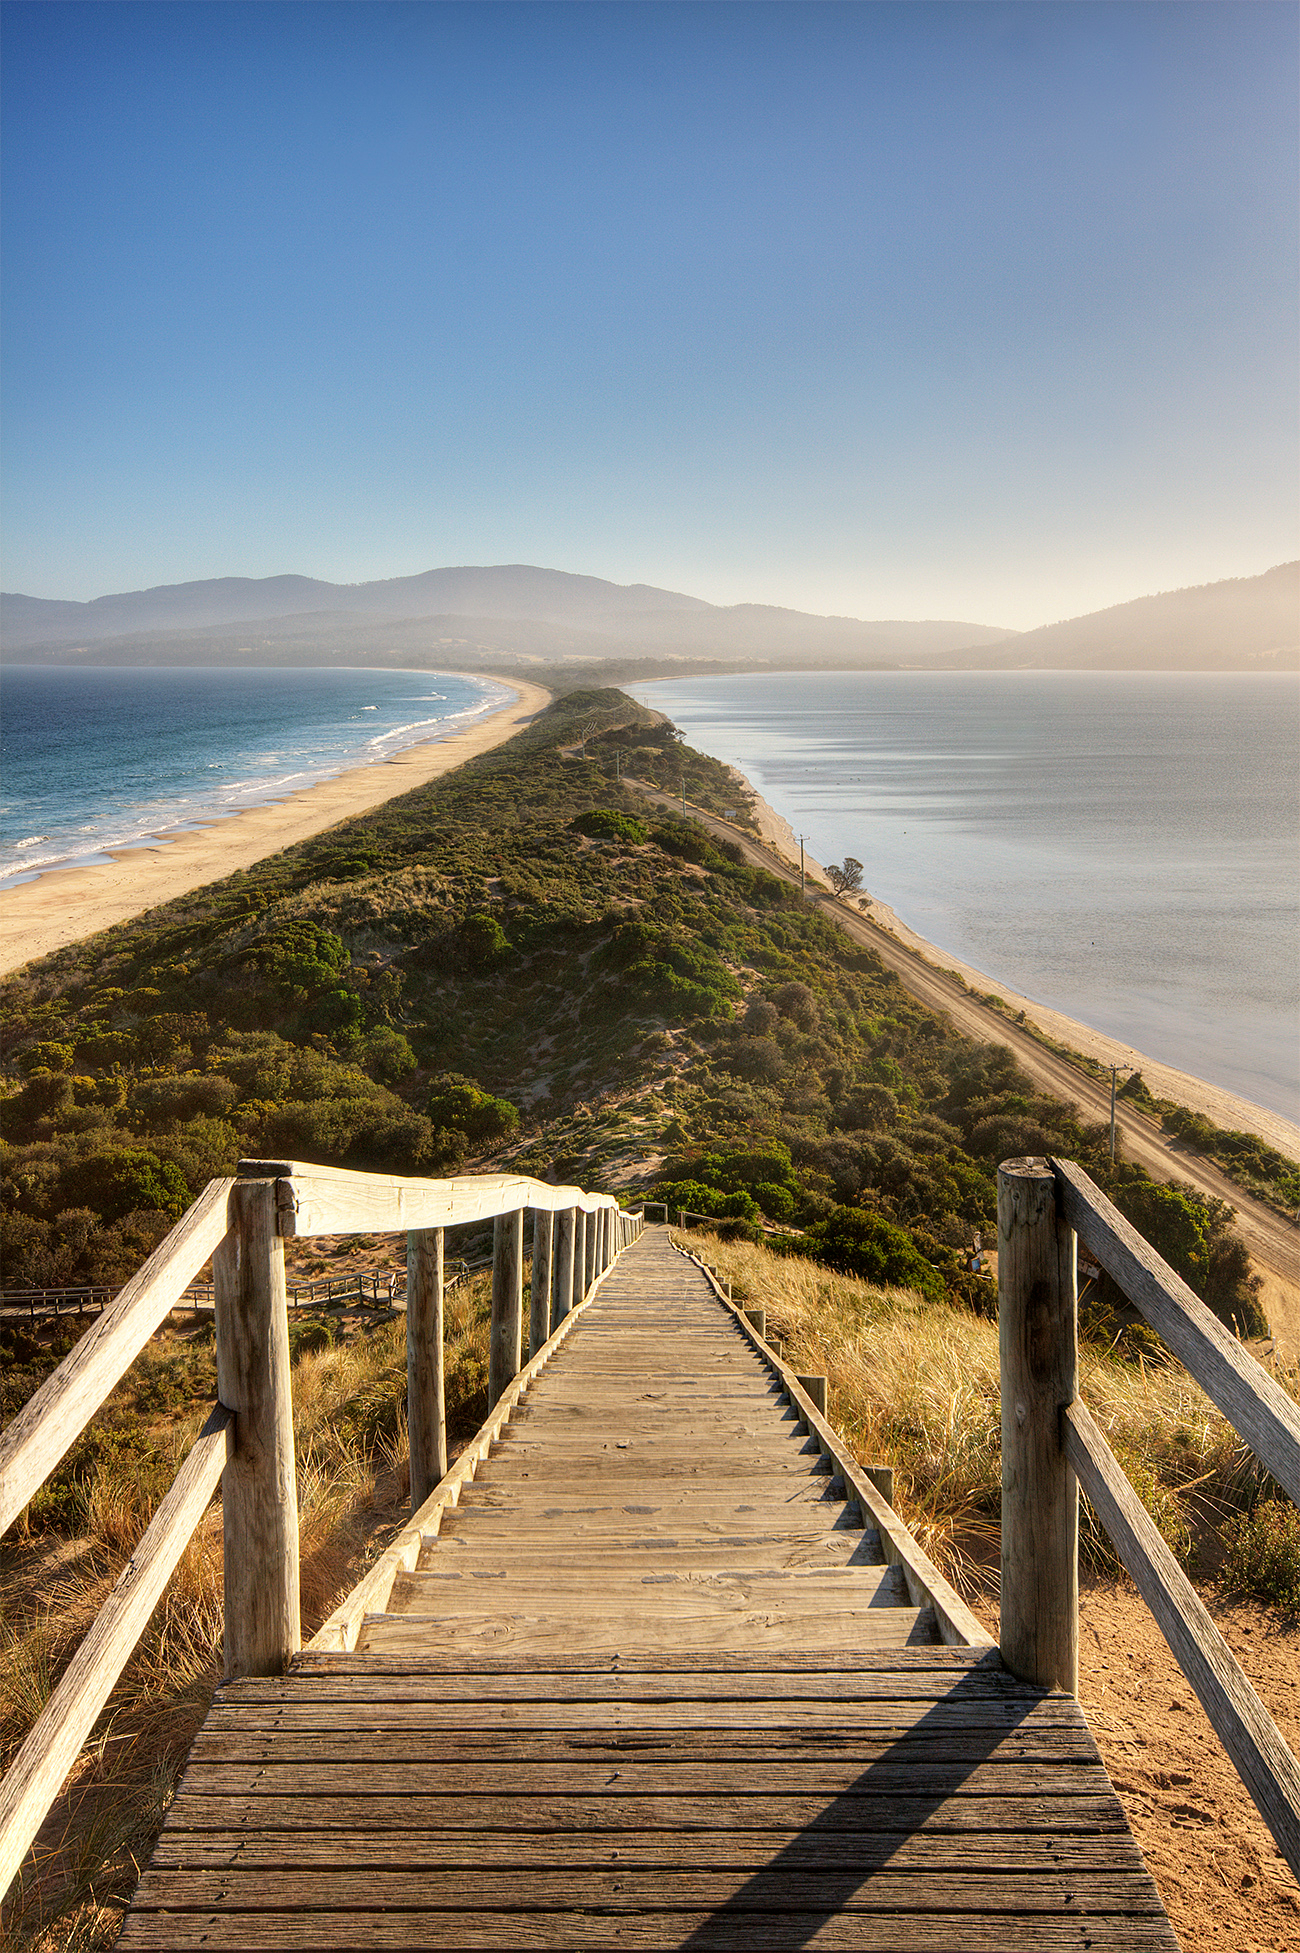 Wikimedia Commons: File:The Neck Bruny Island.jpg